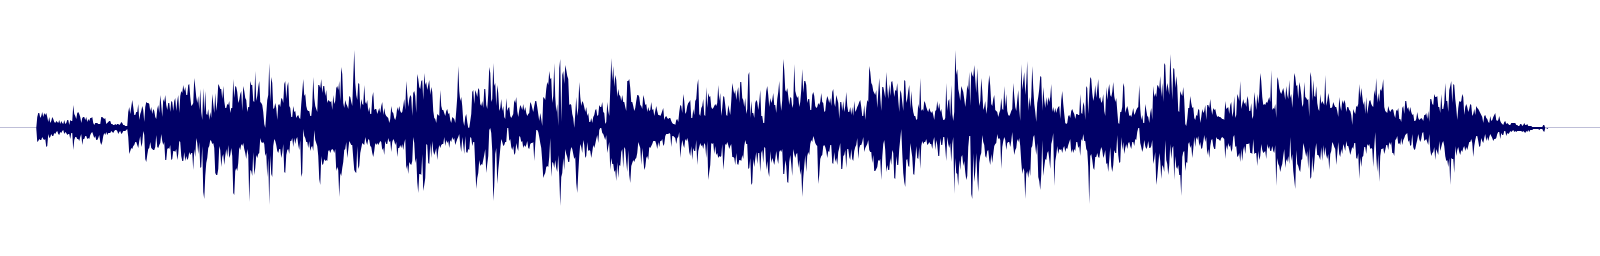 waveform of track #131779